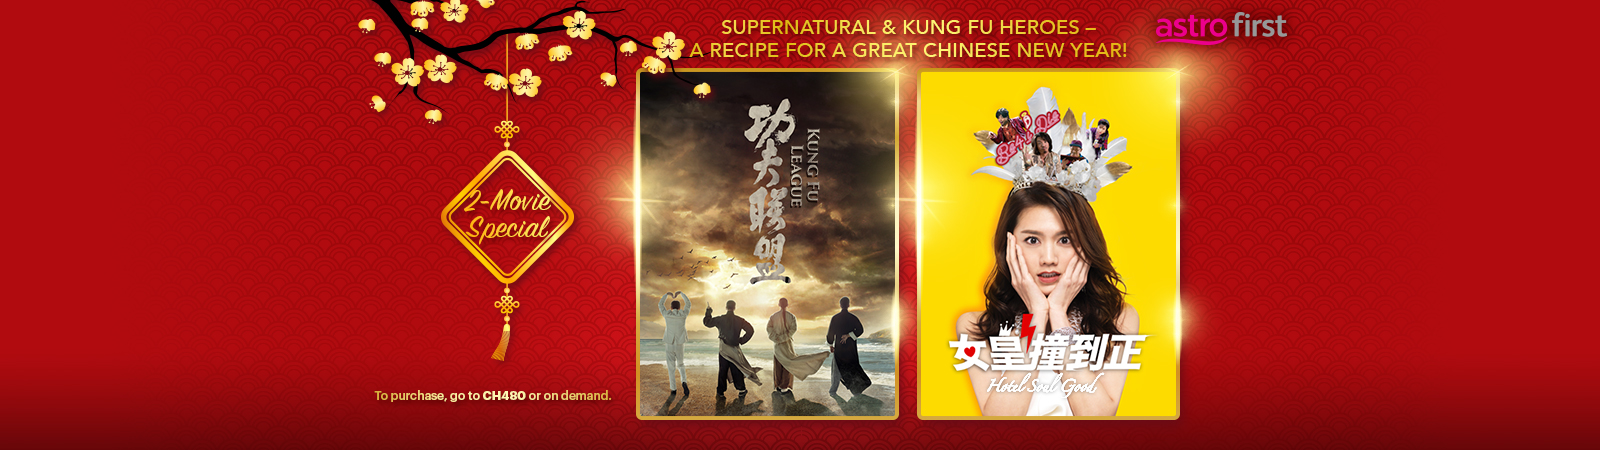 2-Movie Special Chinese New Year